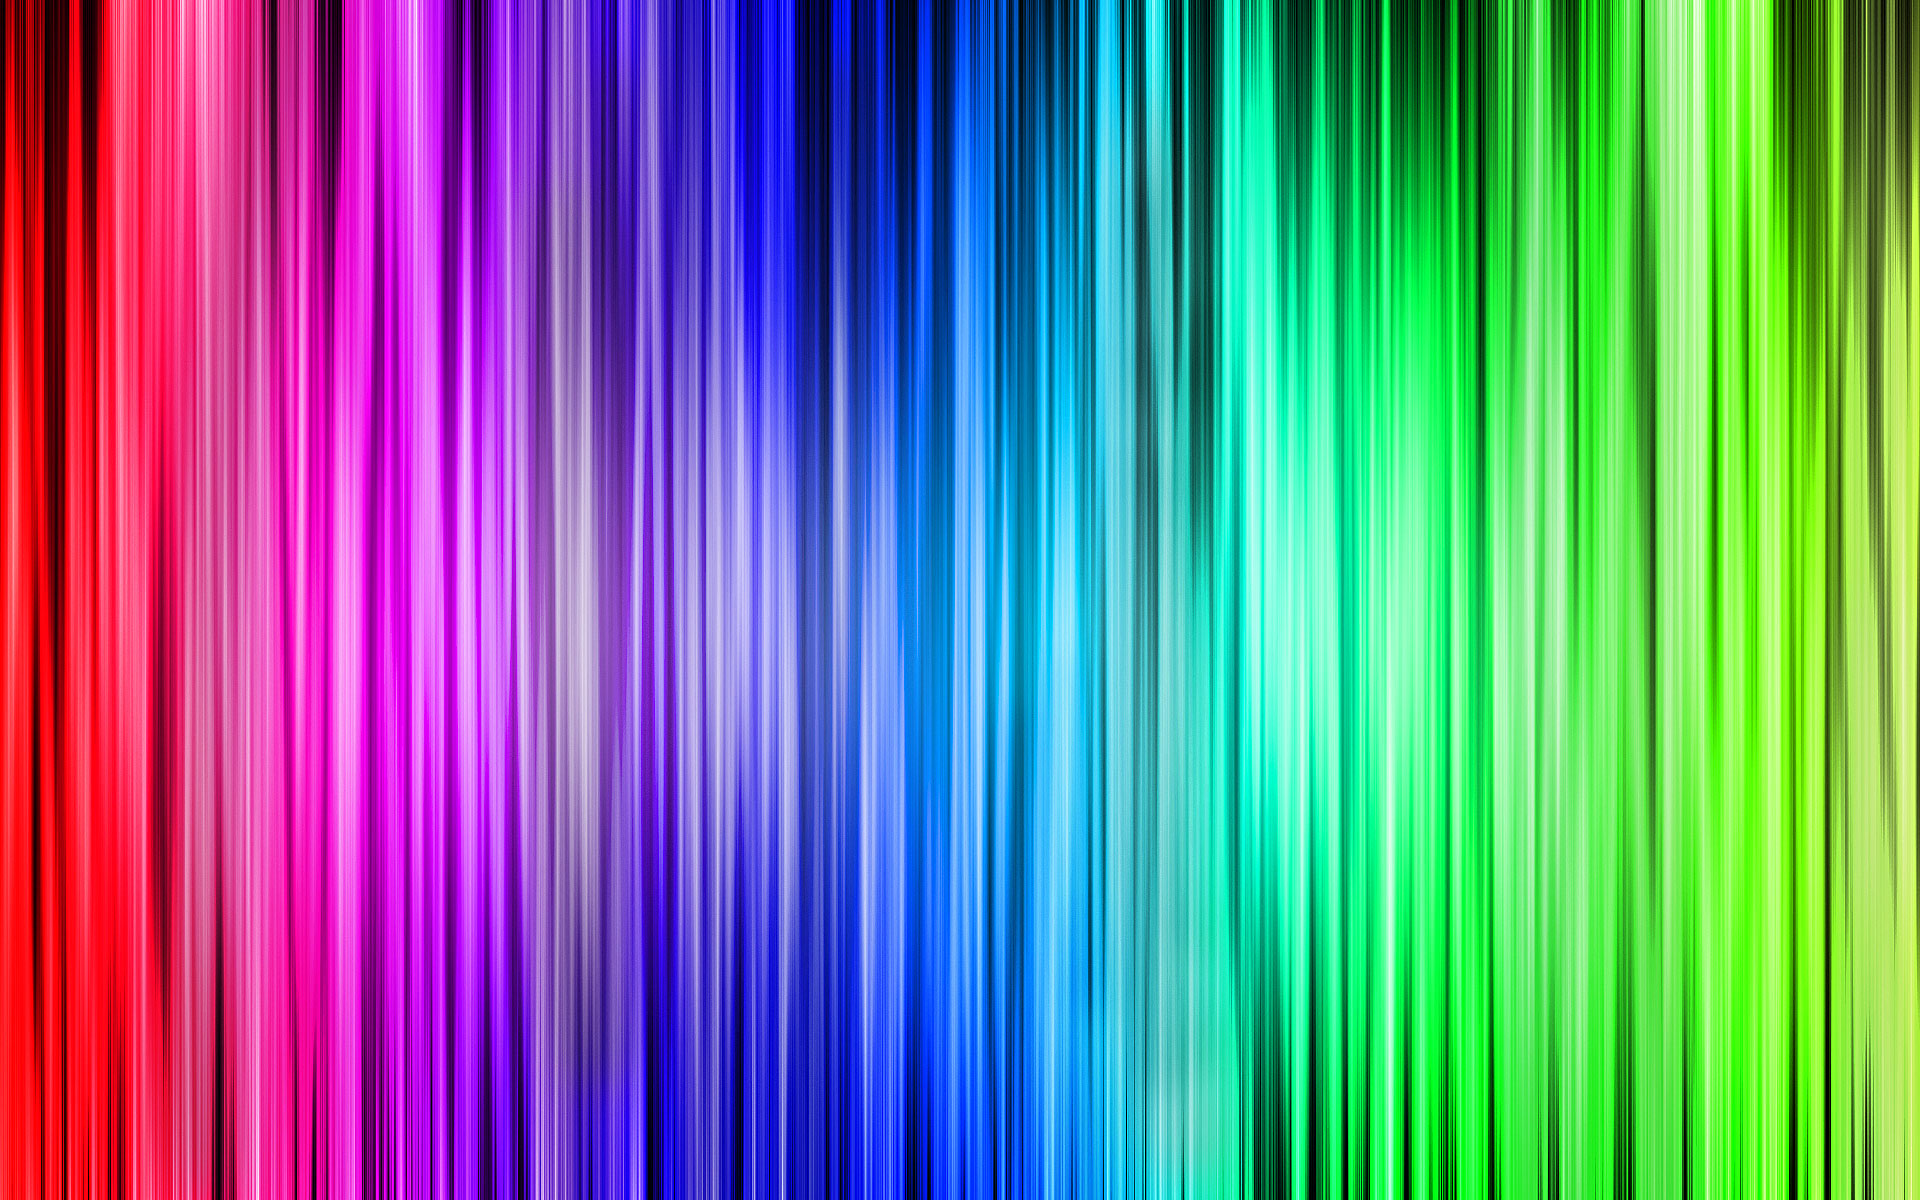 Color Line Design : Free colorful backgrounds